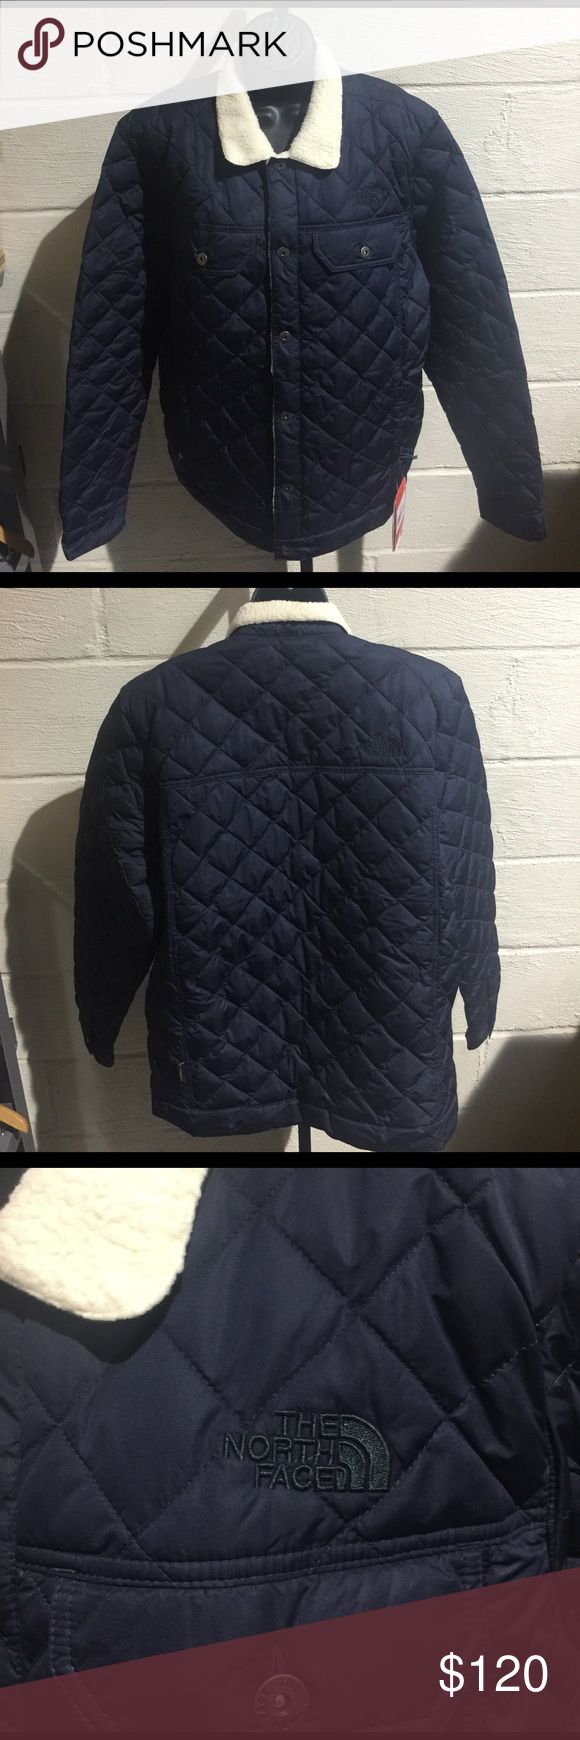 The North Face Men's Sherpa Thermoball Jacket This jacket is lined with Sherpa fleece, Thermoball Insulated and lightweight in cold/wet conditions! (PM-M0069) North Face Jackets & Coats